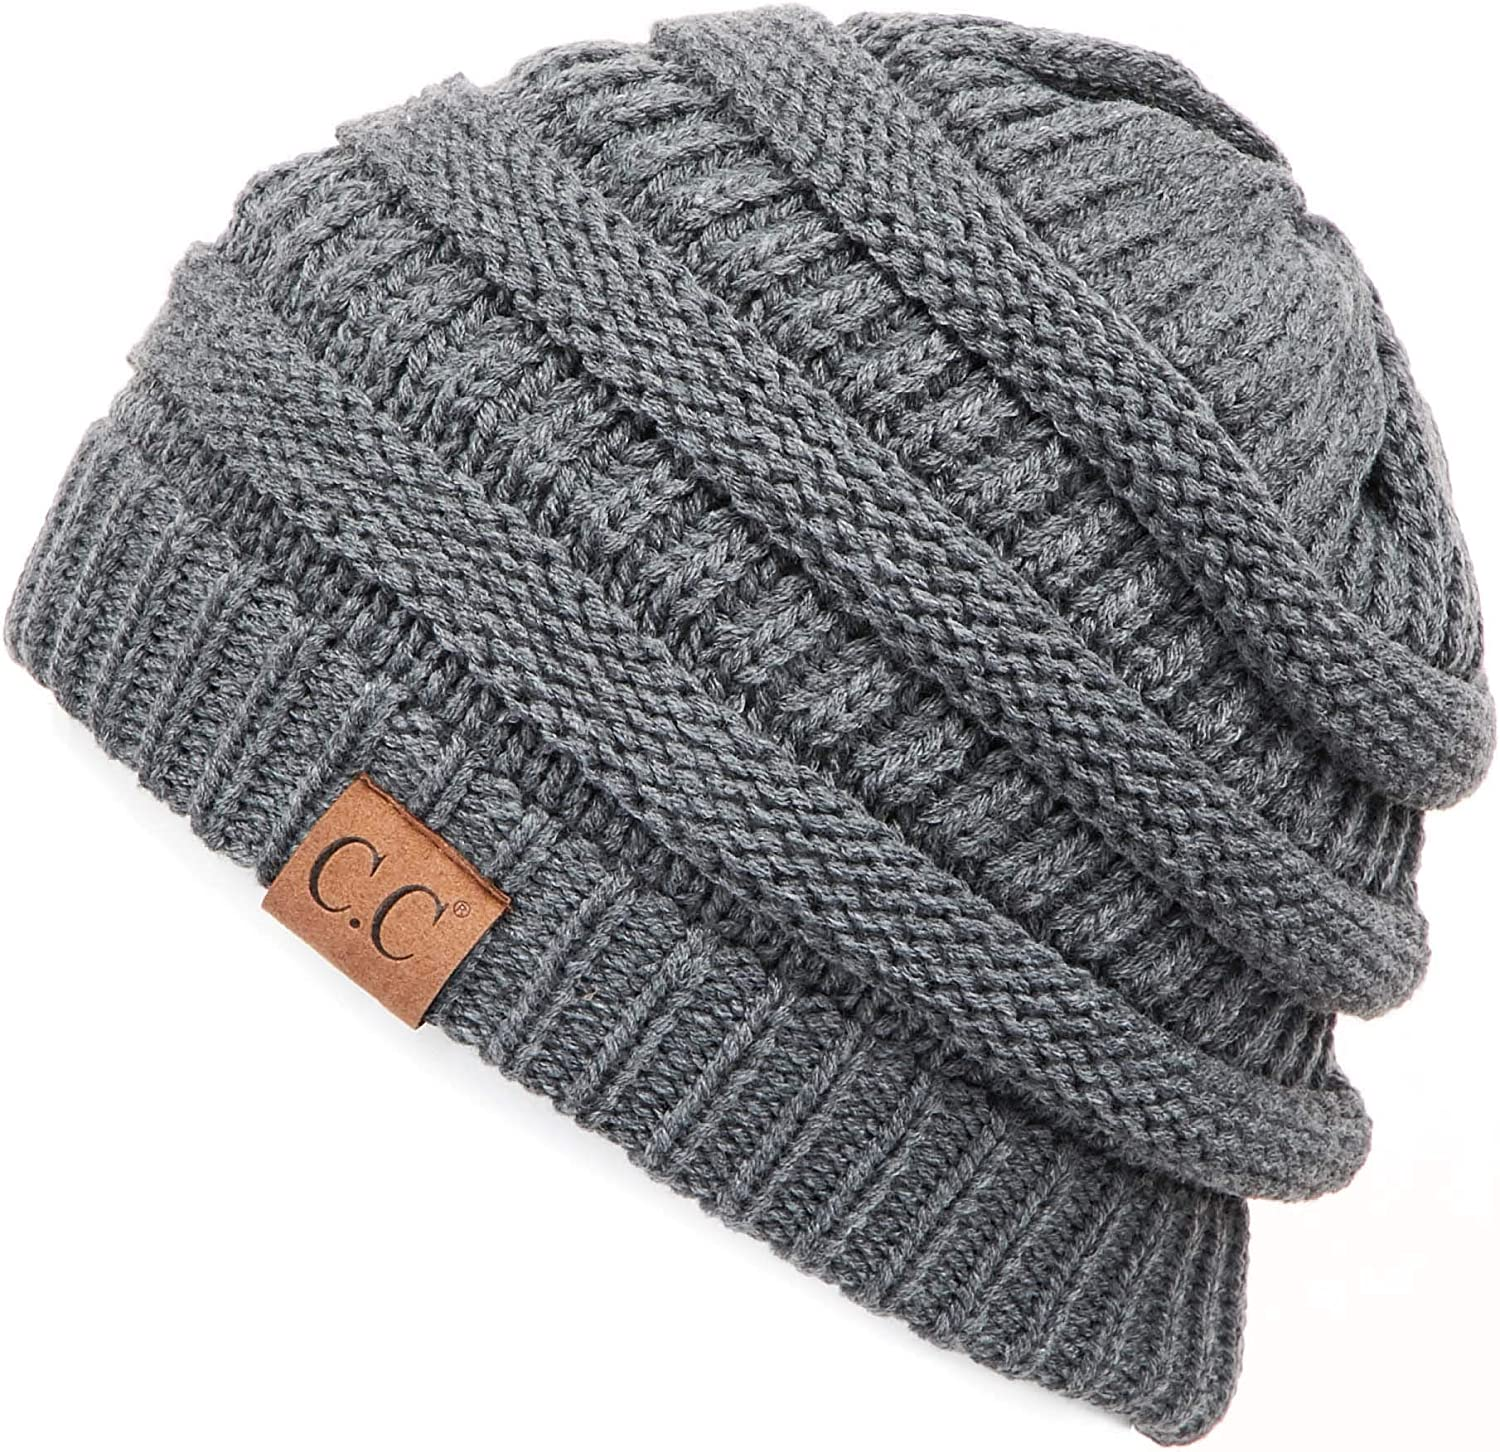 C.C Hatsandscarf CC Exclusives Unisex Soft Stretch Solid color Fuzzy Lined Beanie Hat (HAT25) (Dk. Mel Grey)